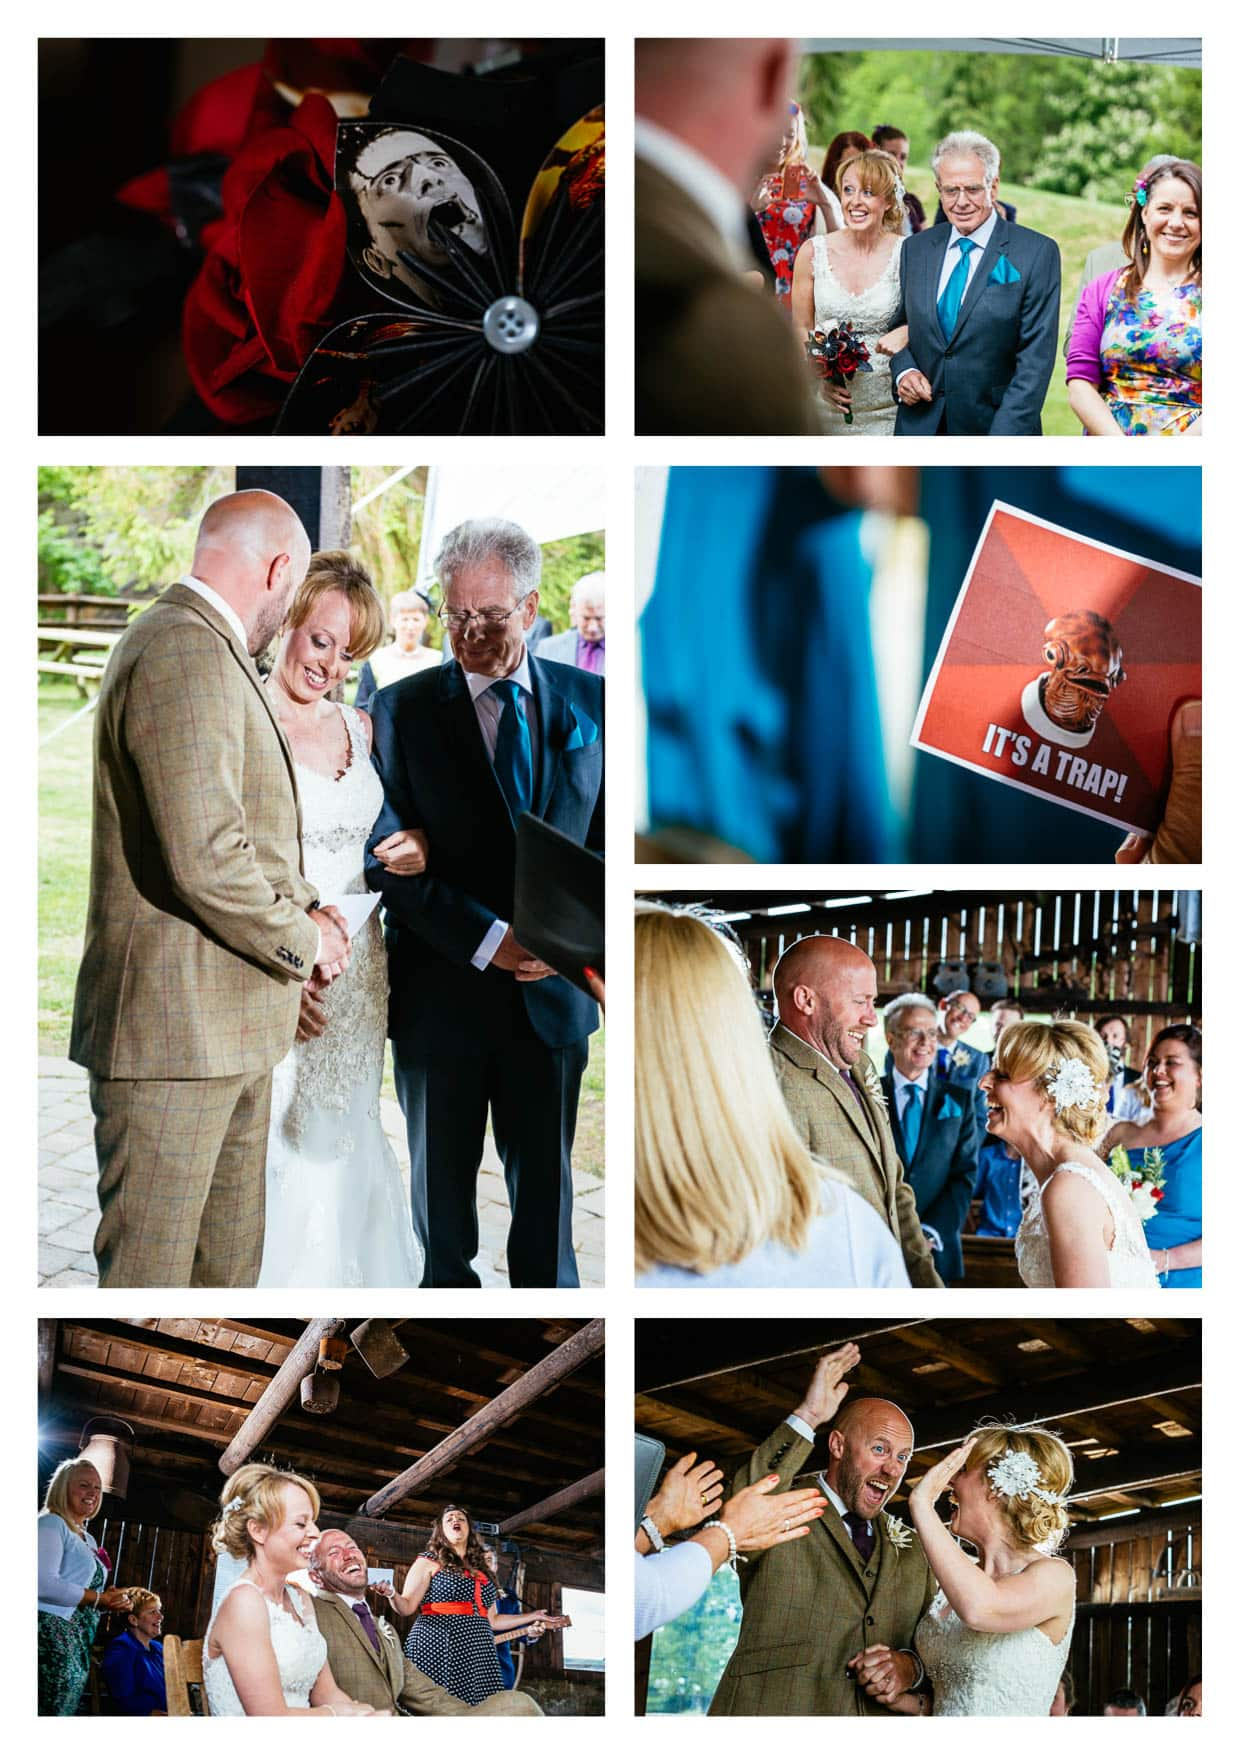 Wedding Photographer Wales at Tower Hill Barns Llangollen Wales